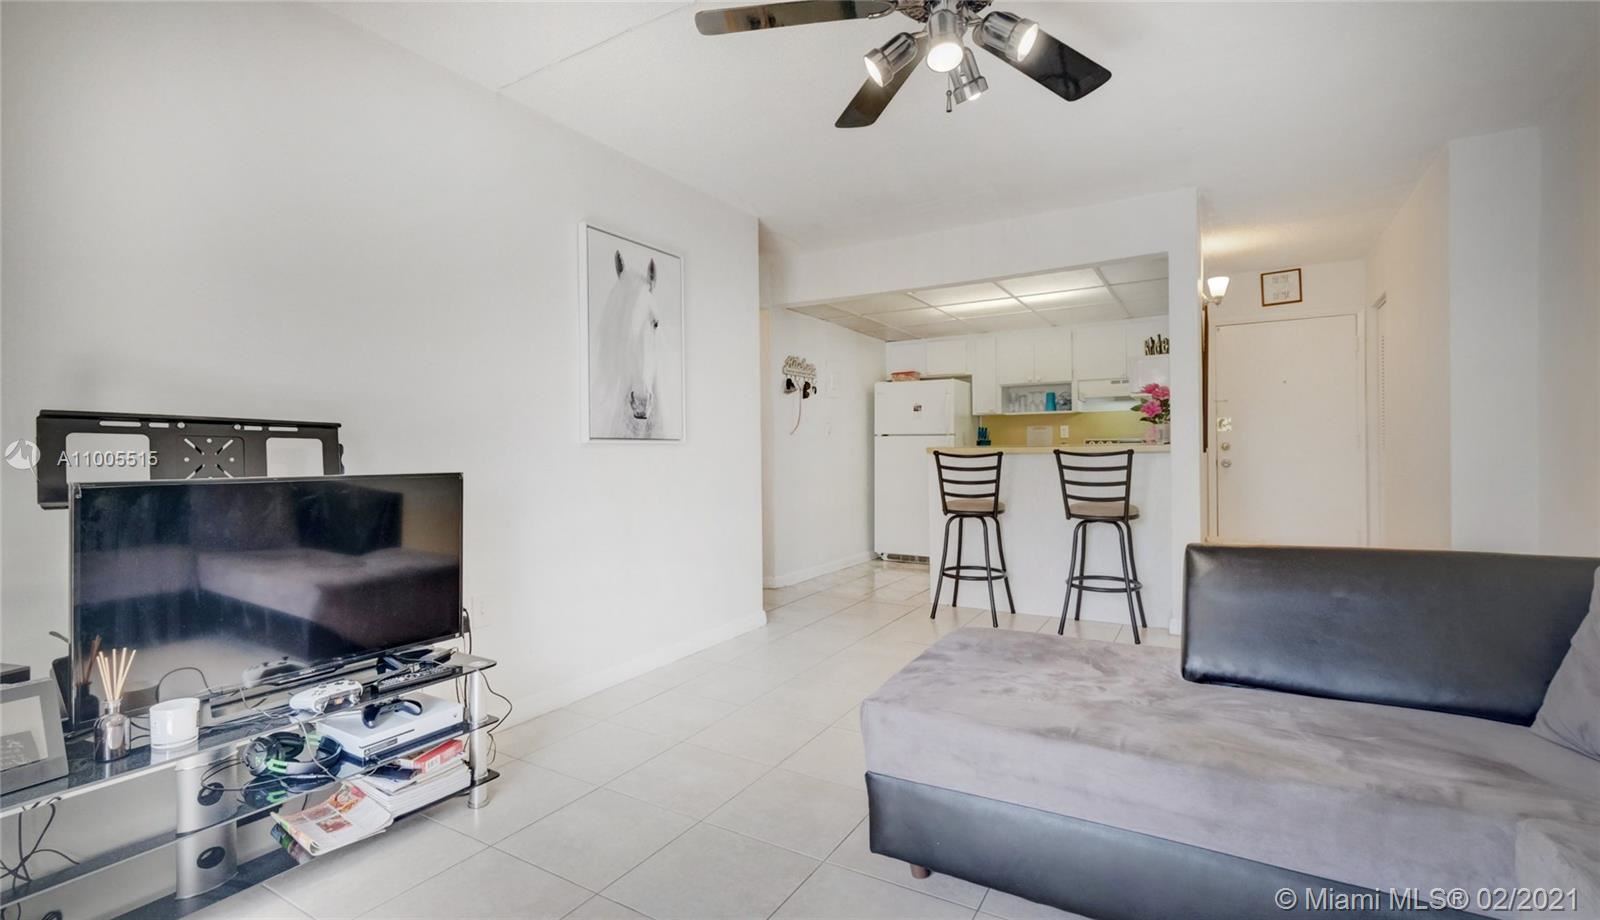 Photo of 4301 NW South Tamiami Canal Dr #3-315, Miami, FL 33126 (MLS # A11005515)